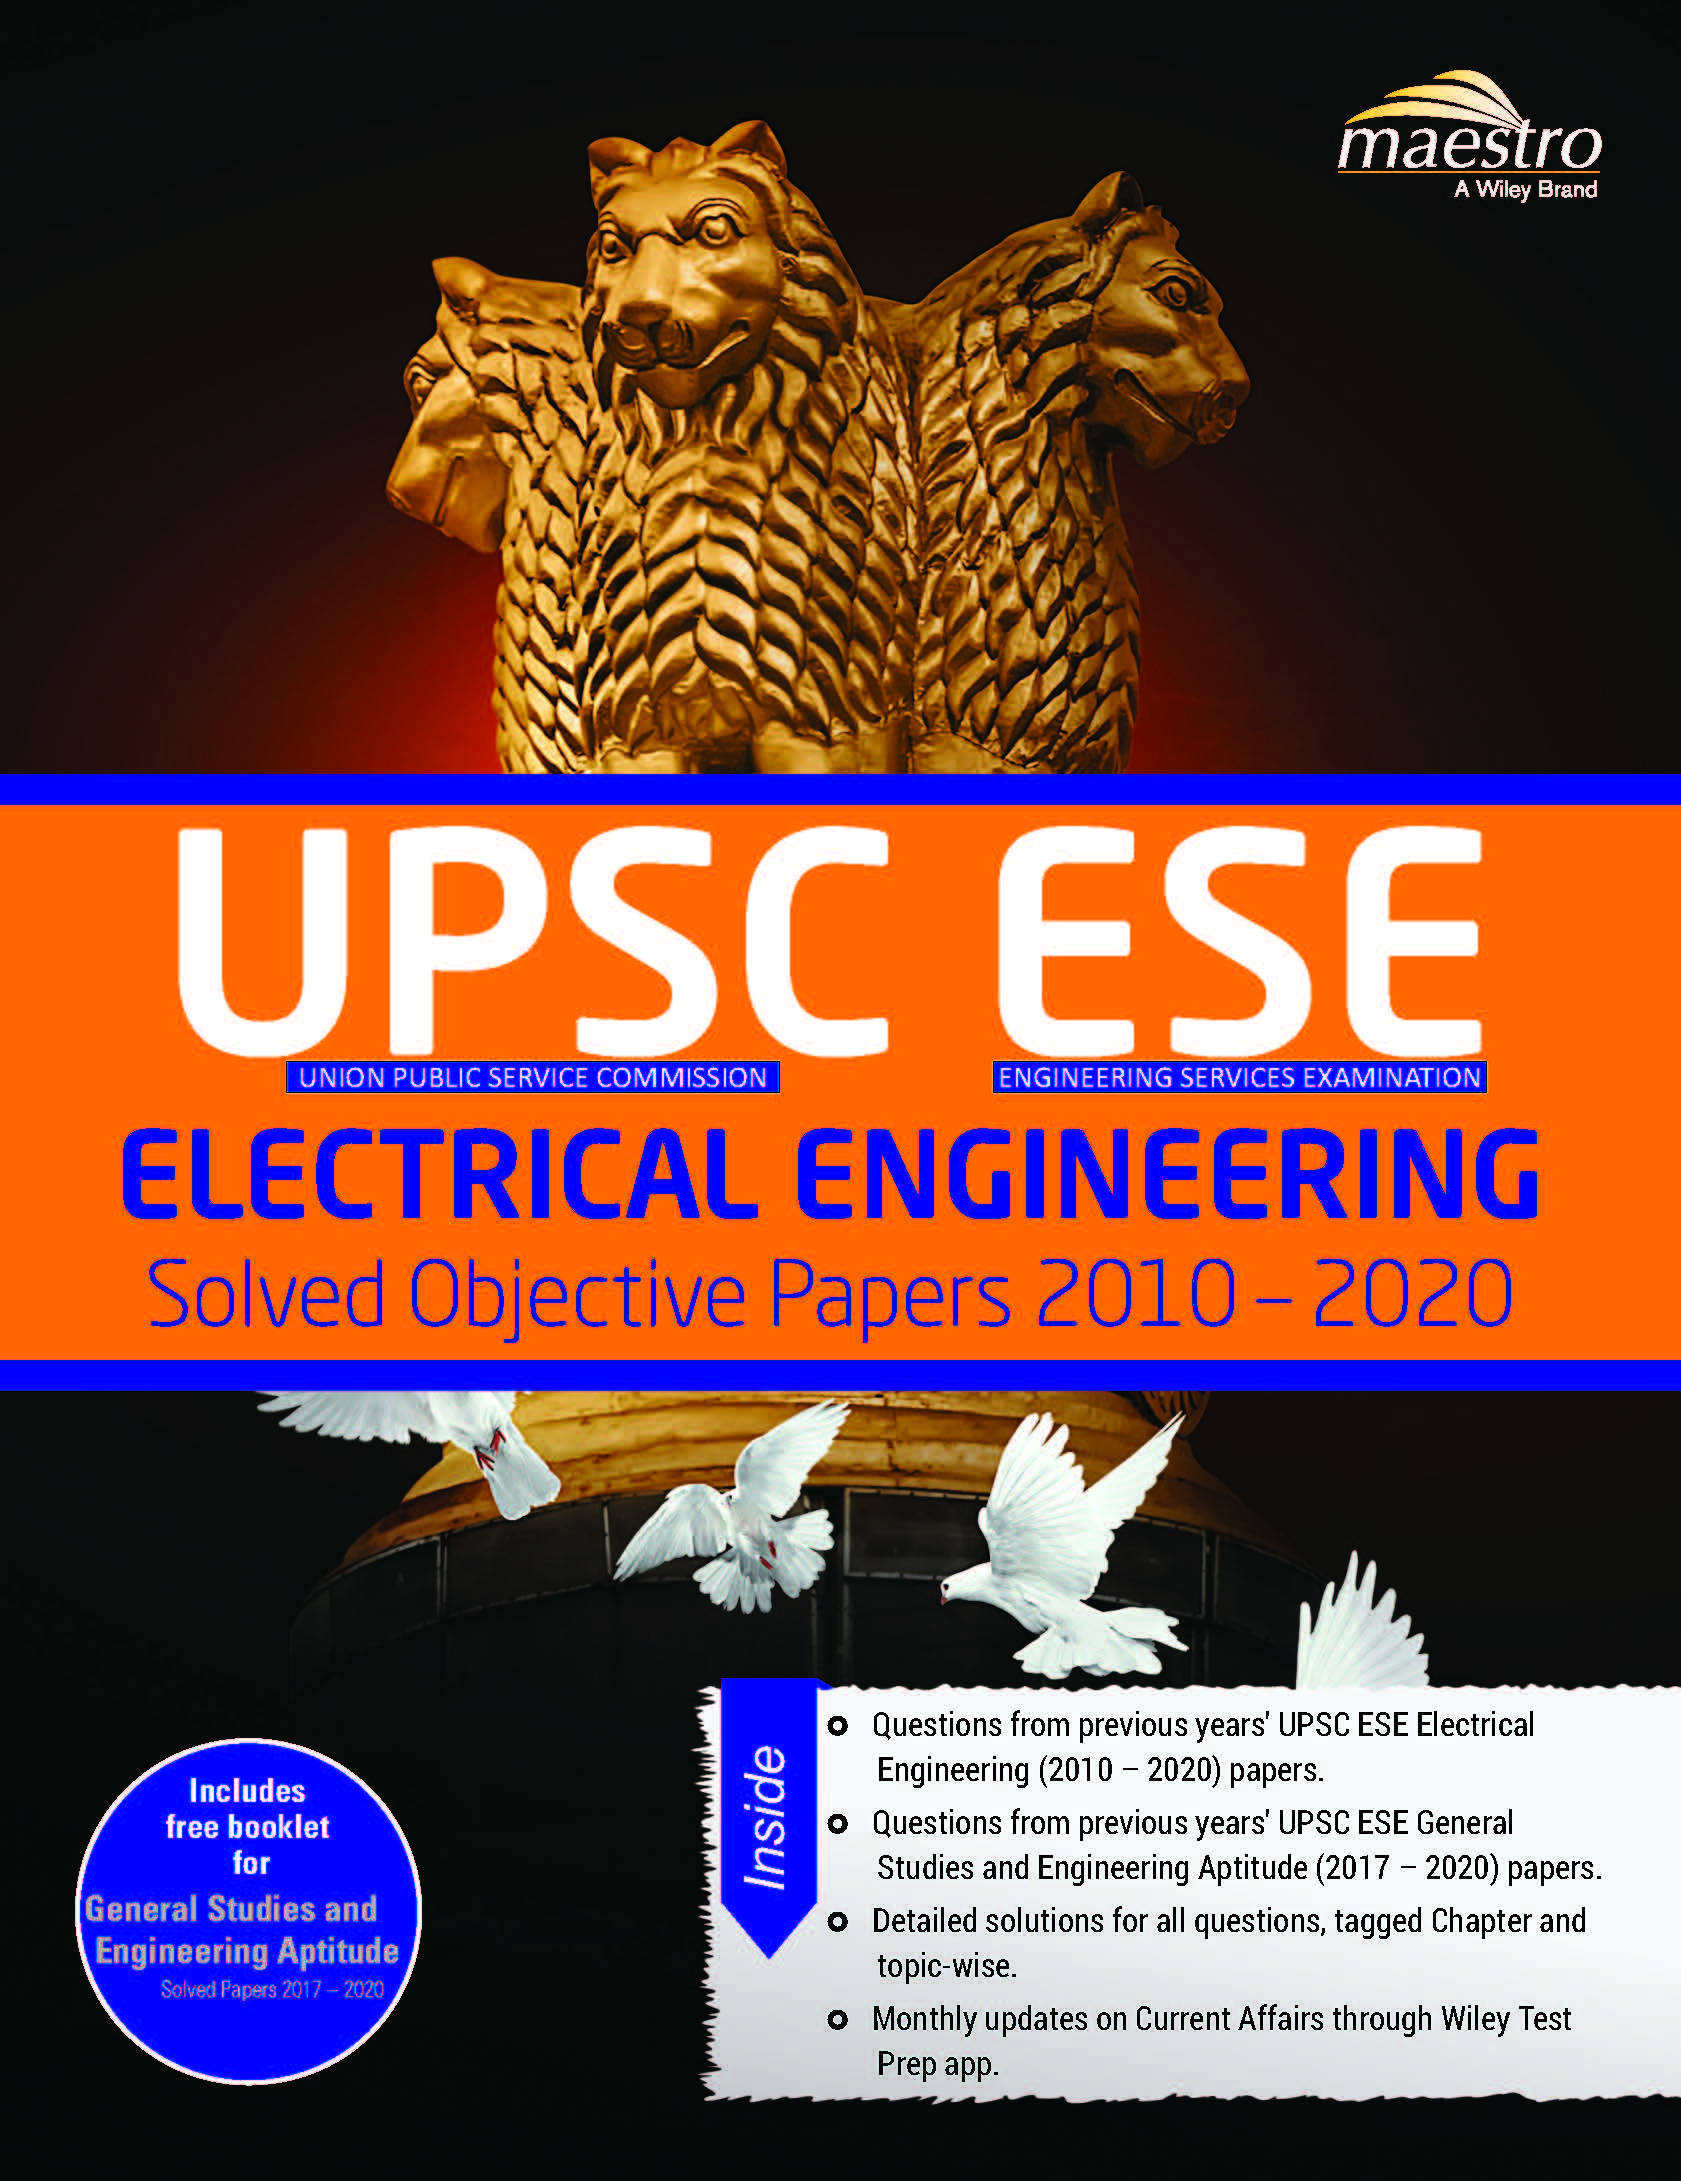 Wiley's UPSC ESE Electrical Engineering Solved Objective Papers 2010 - 2020: Includes free booklet for General Studies and Engineering Aptitude Solved Papers 2017 - 2020